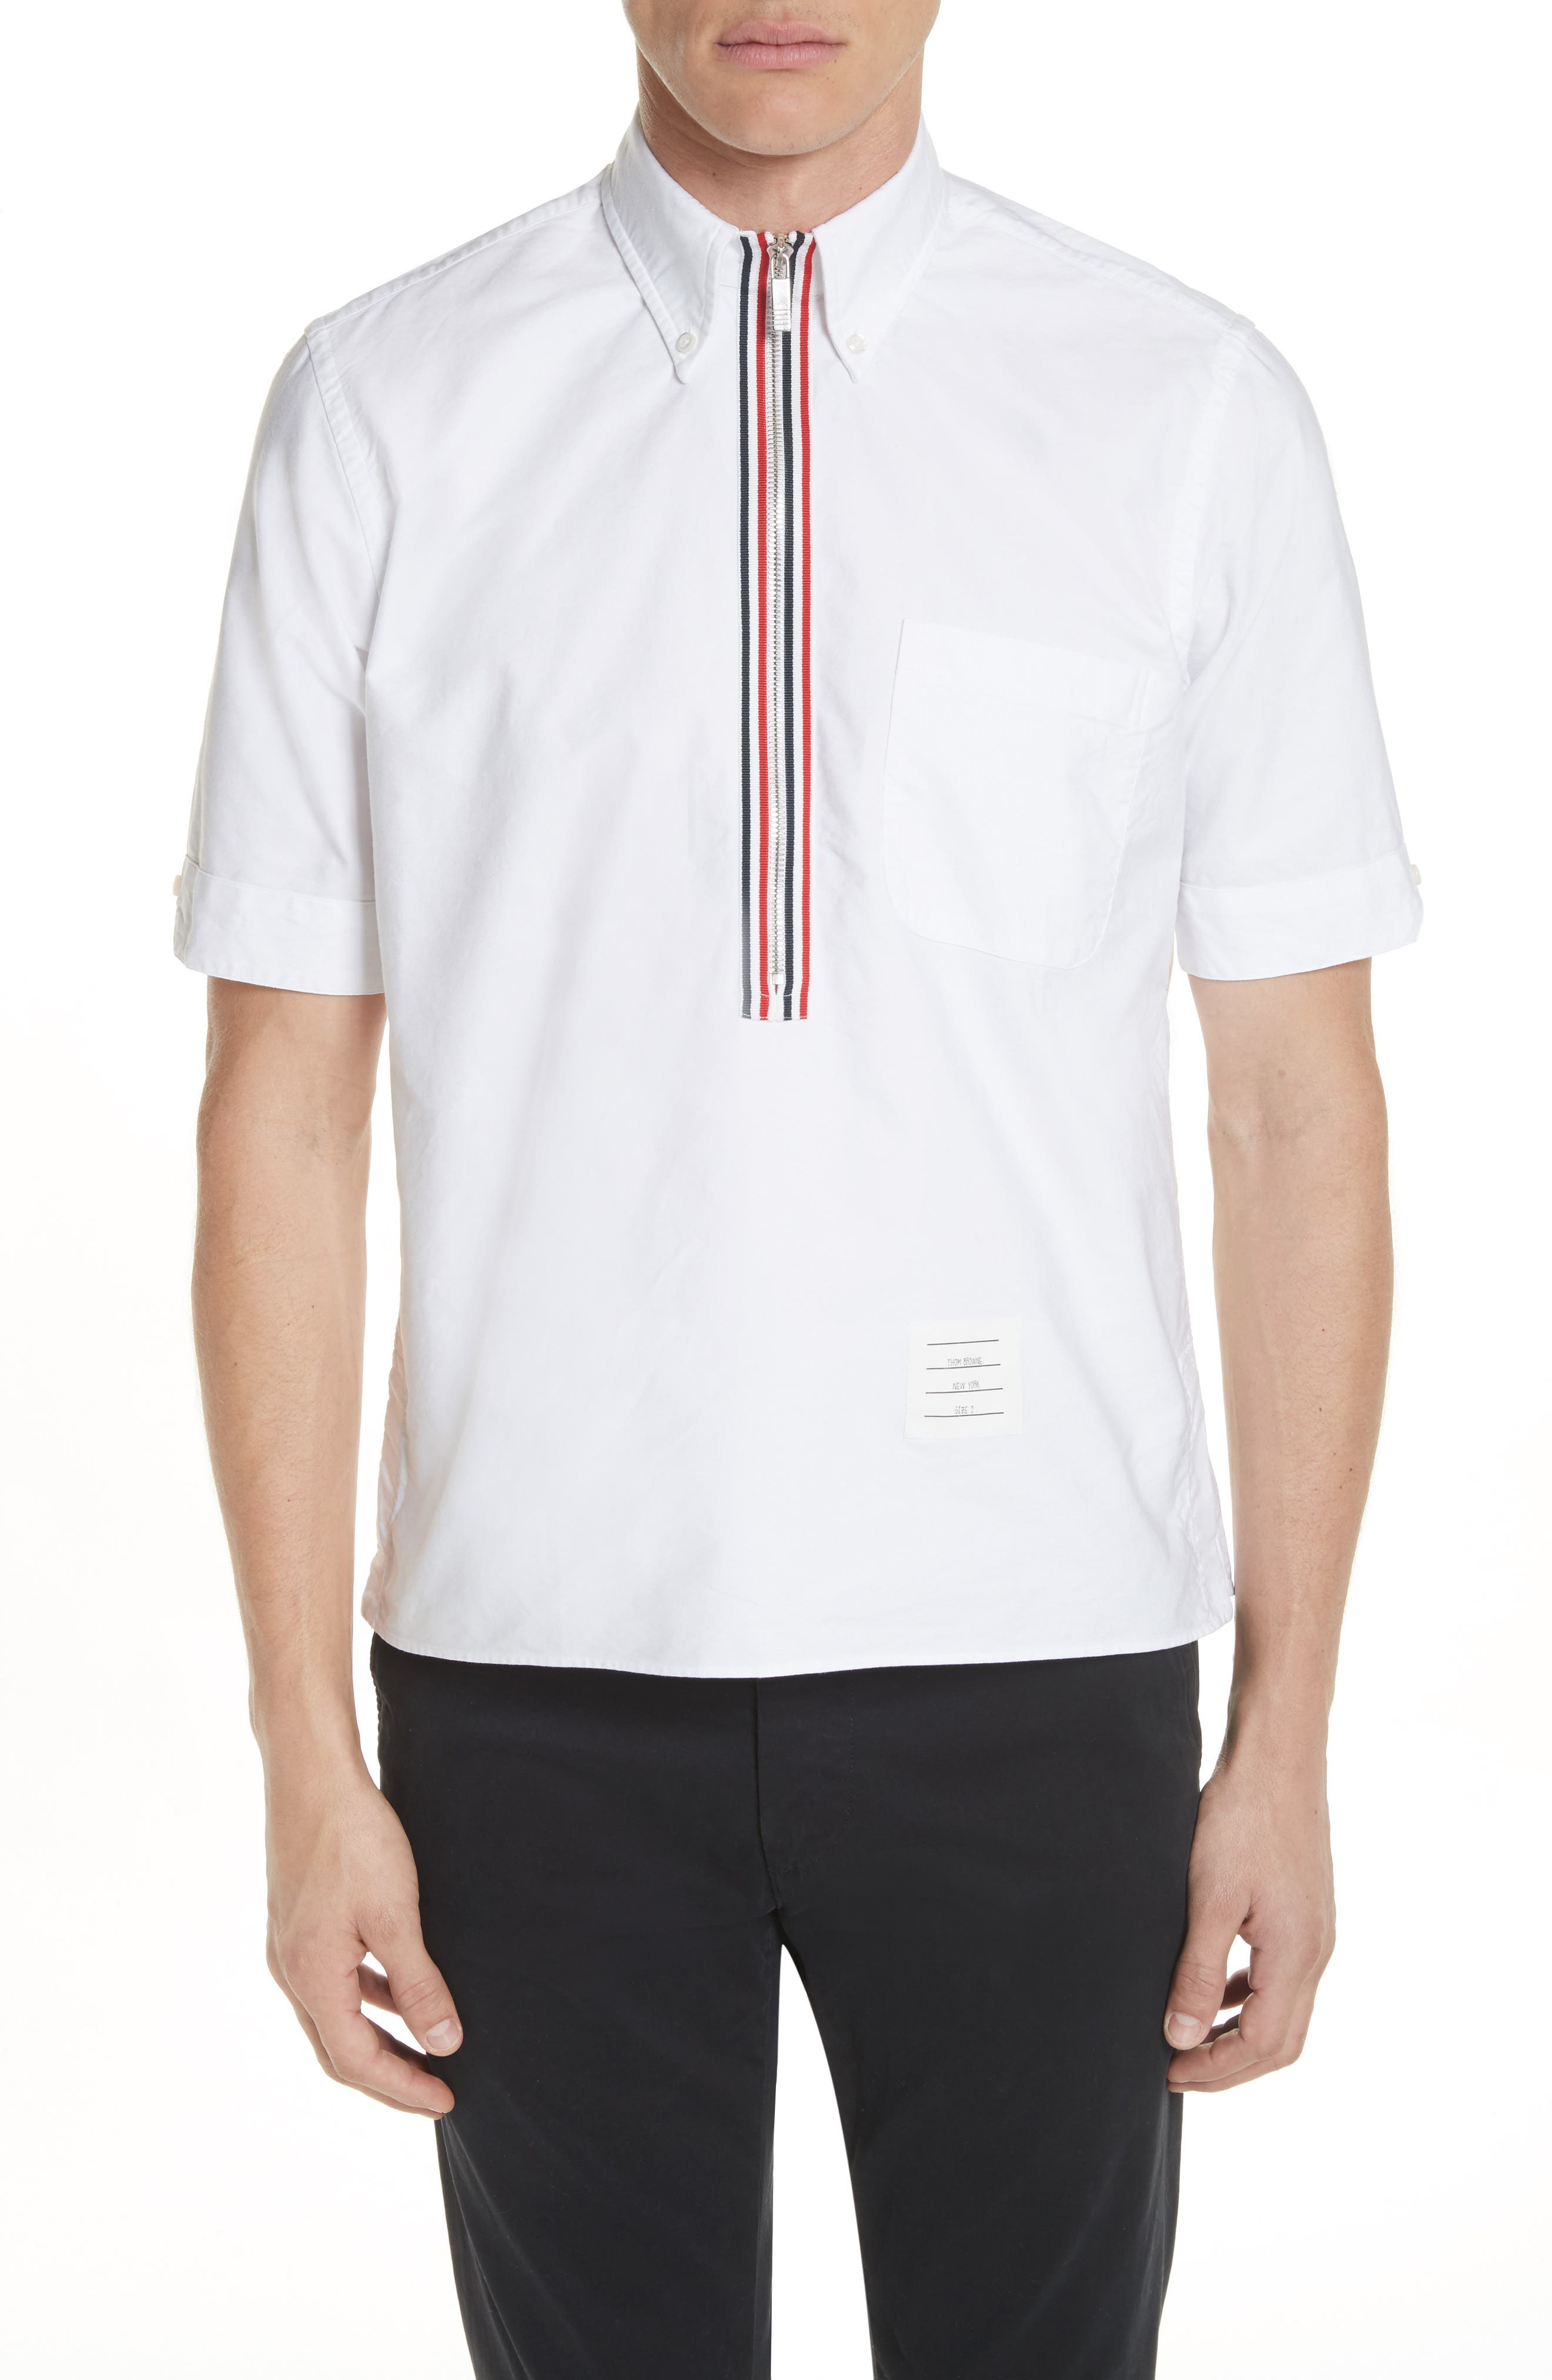 Thom Browne Zip Pullover Woven Shirt